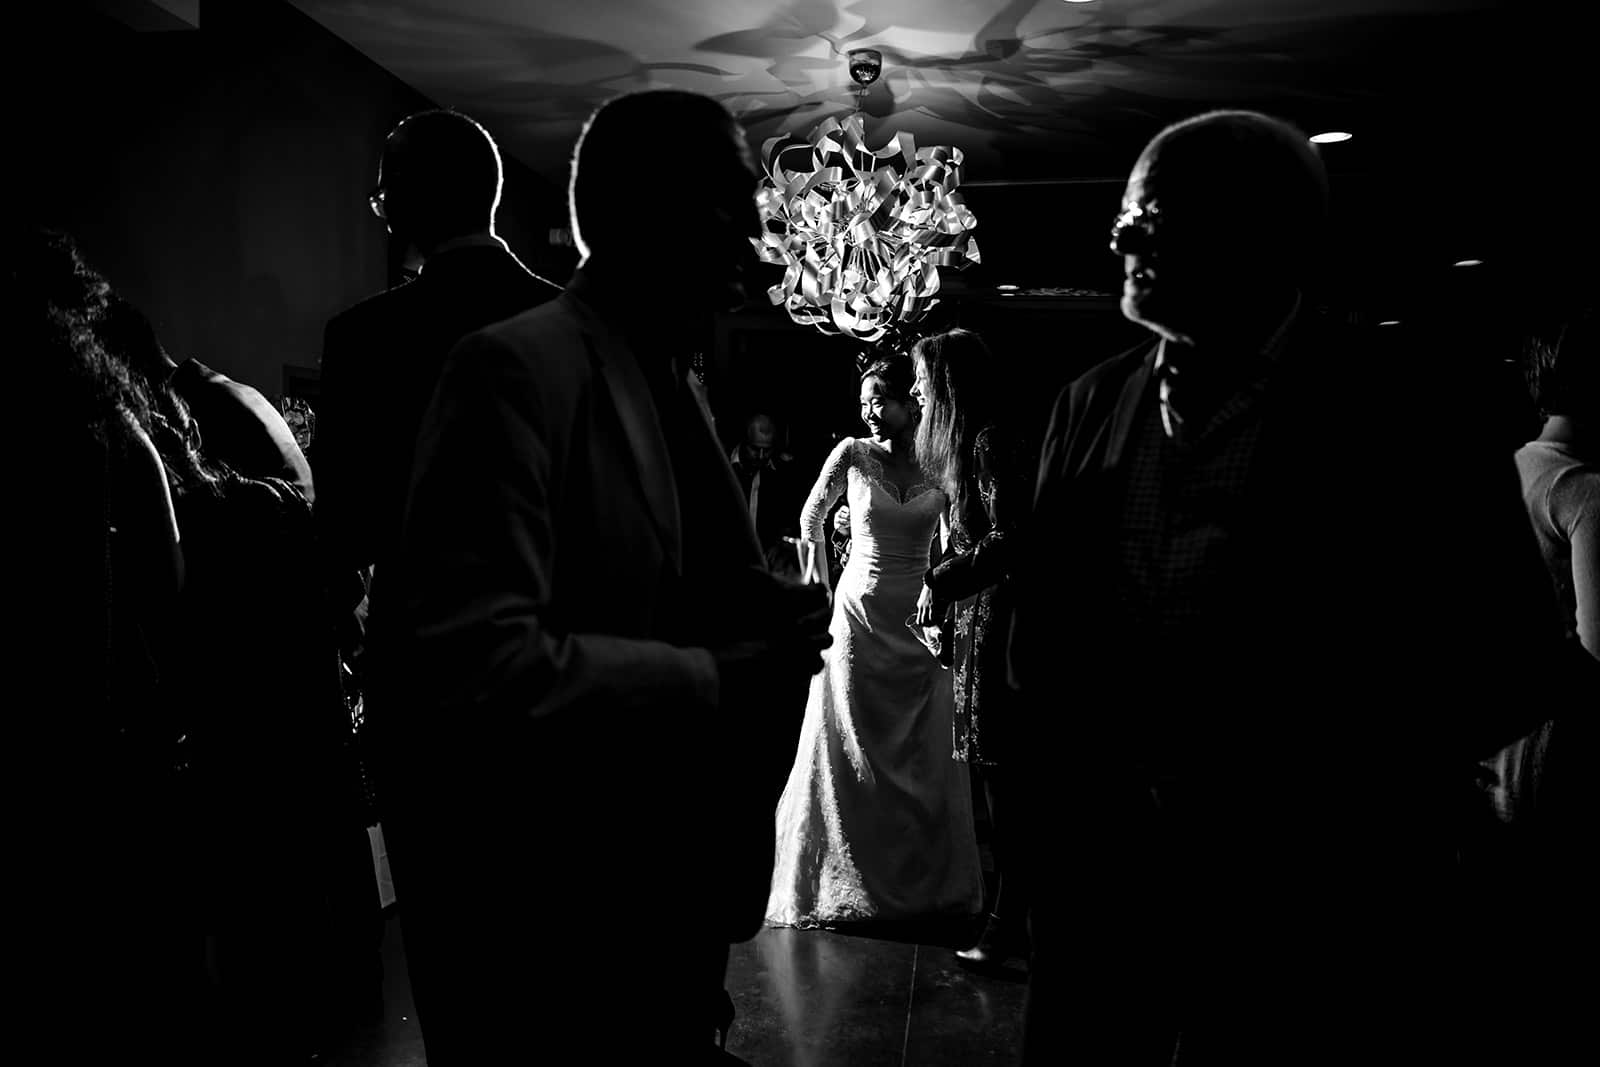 Intimate wedding photographer Aix les Bains Photographe de mariage intime Aix les Bains